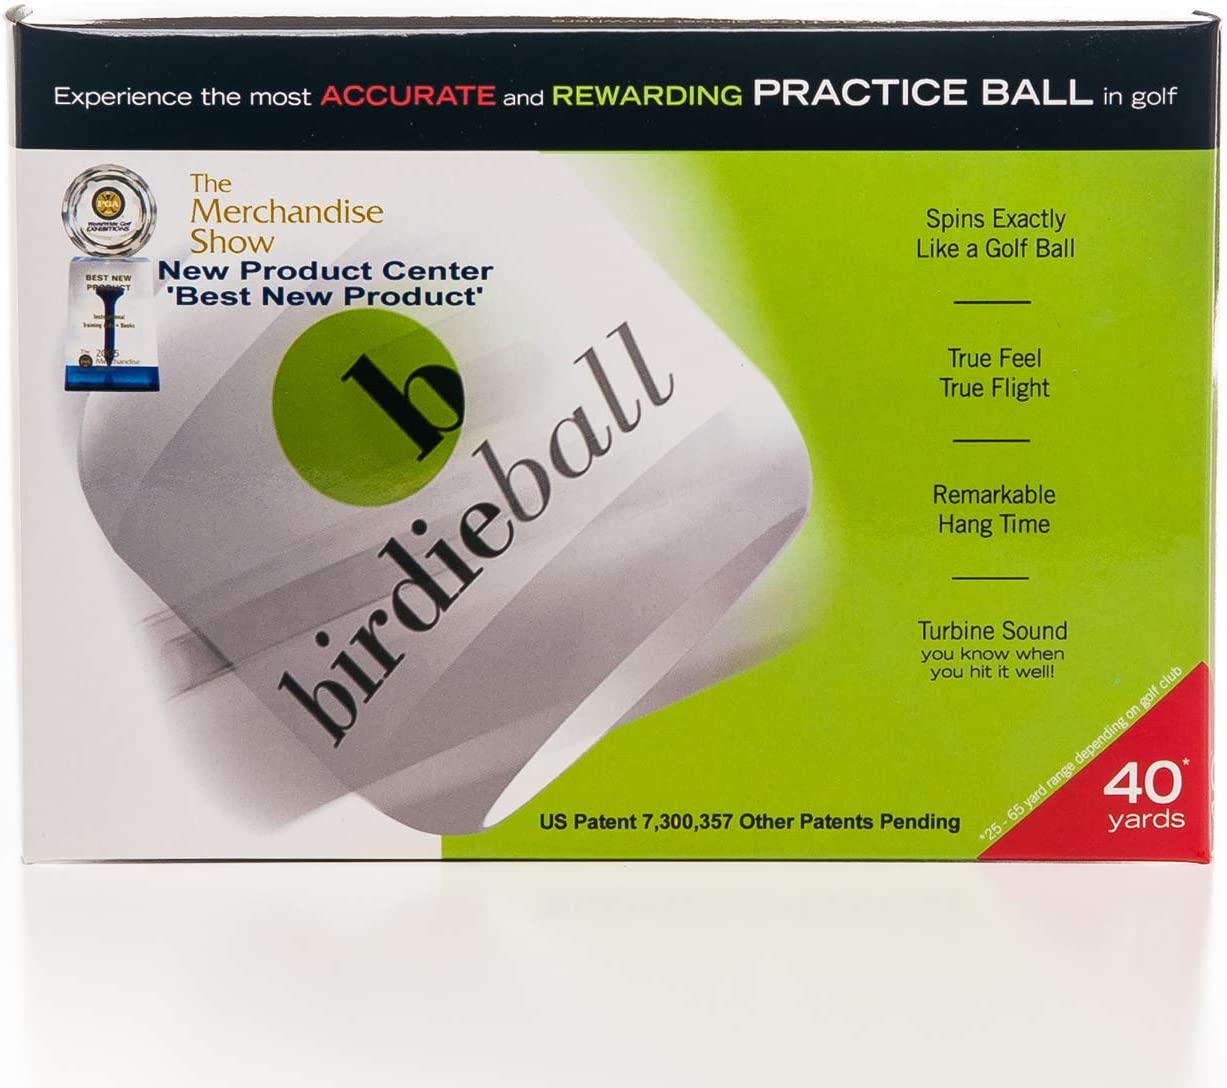 BirdieBall Practice Golf Balls, Full Swing Limited Flight Golf Practice Balls, Perfect Training Aid for All Golfers pack of 12